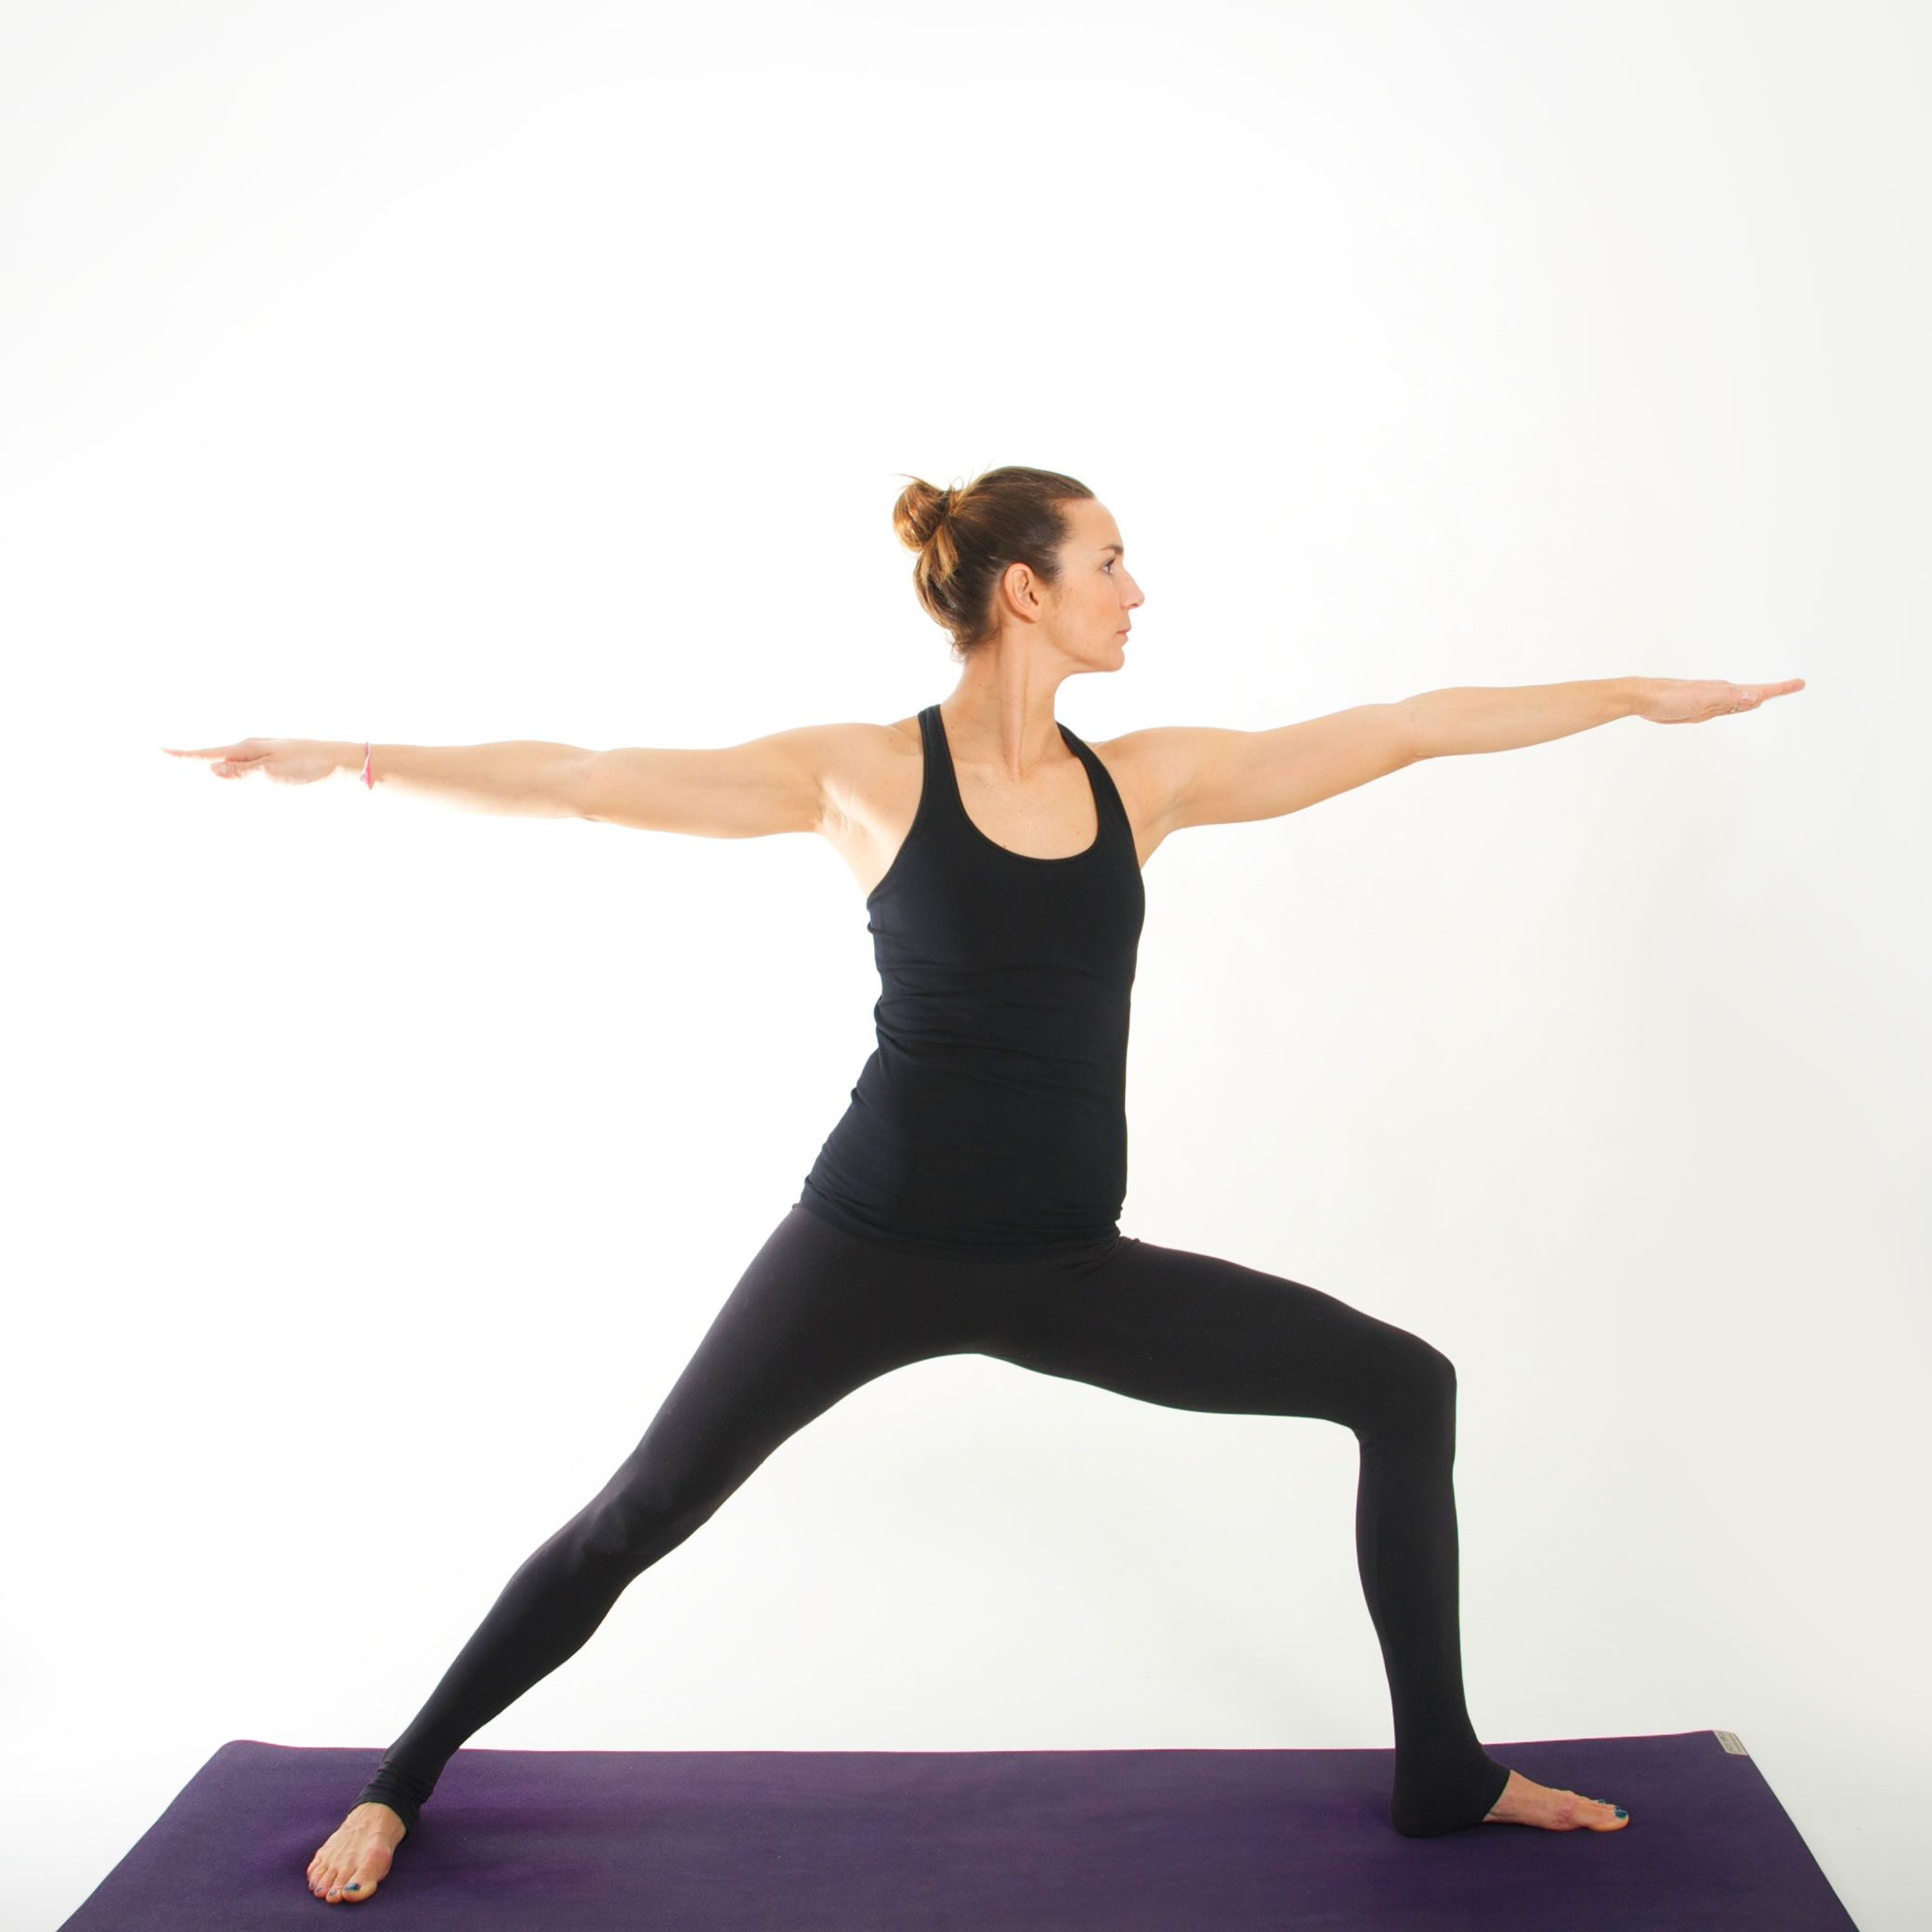 Yoga Asana I Warrior II I myyogaflows